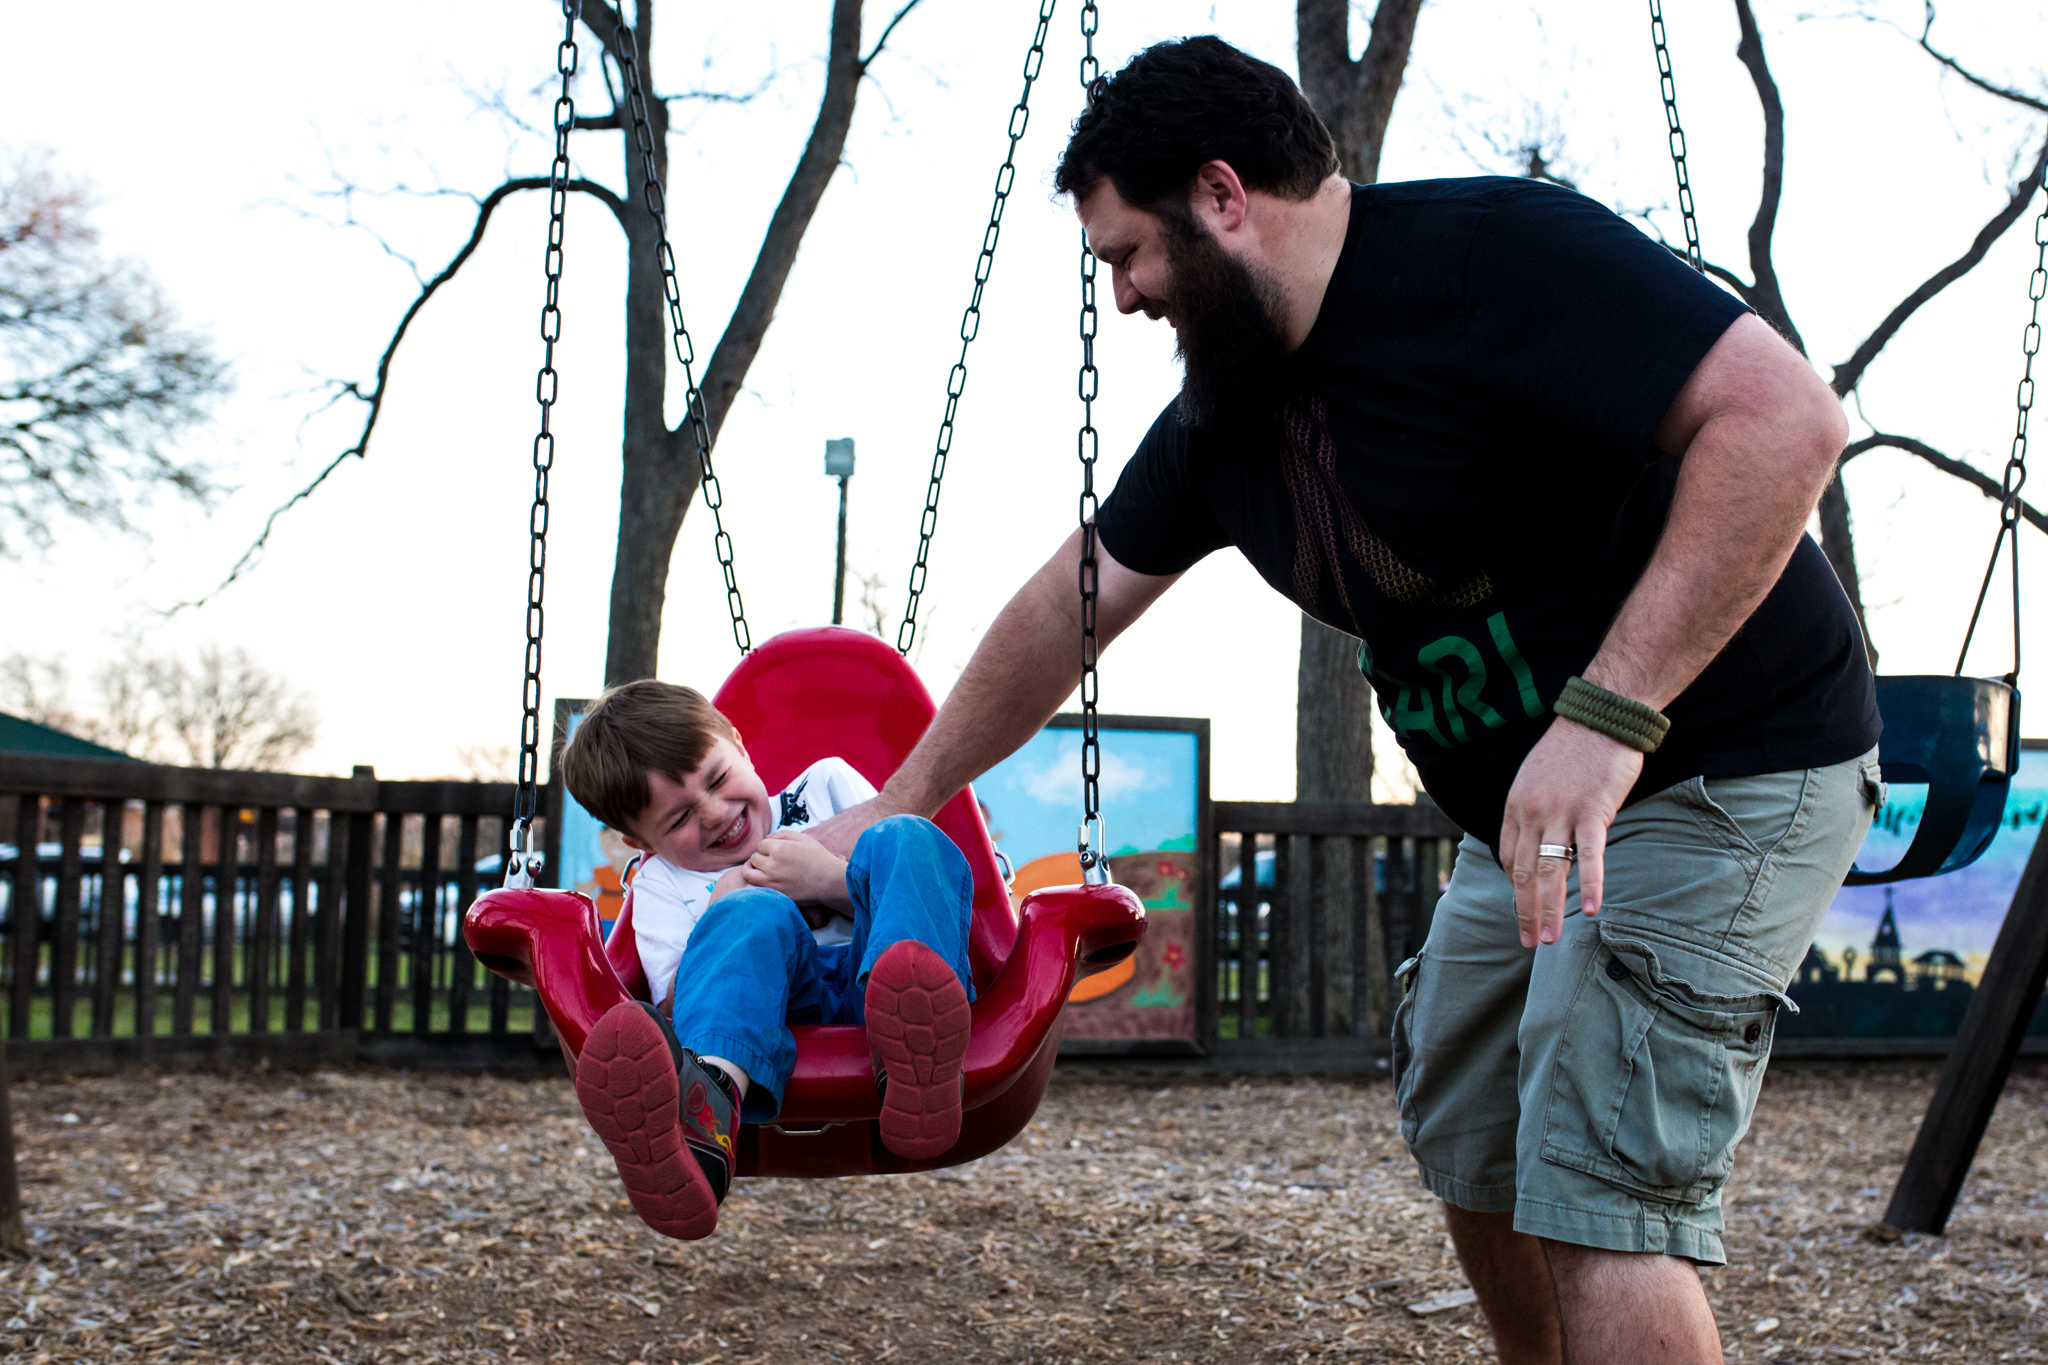 father tickles his son while on a swing set